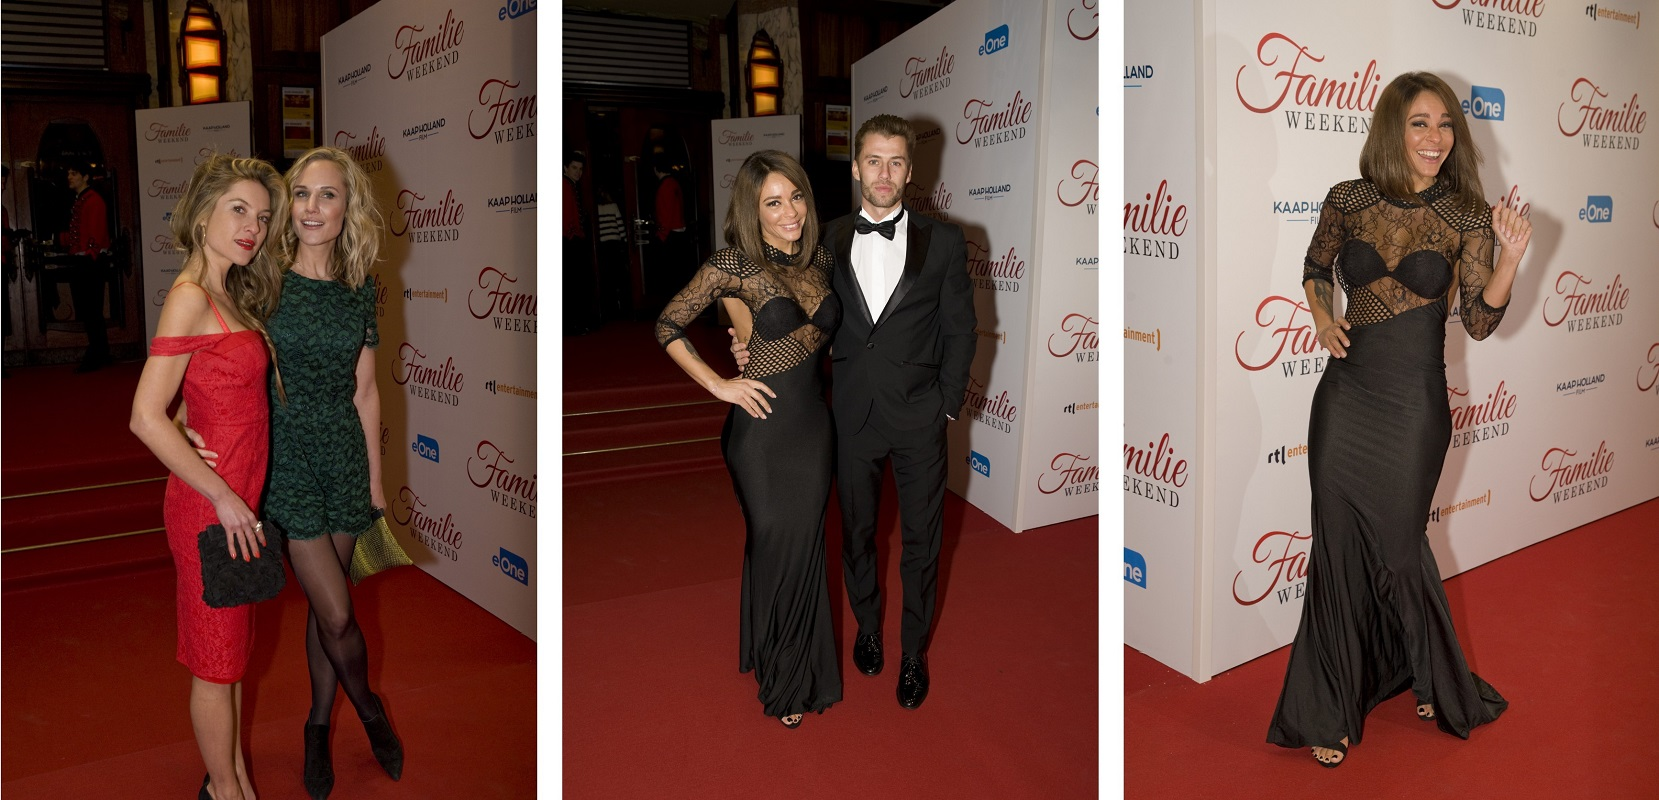 Premiere Familieweekend Glamourland (6)